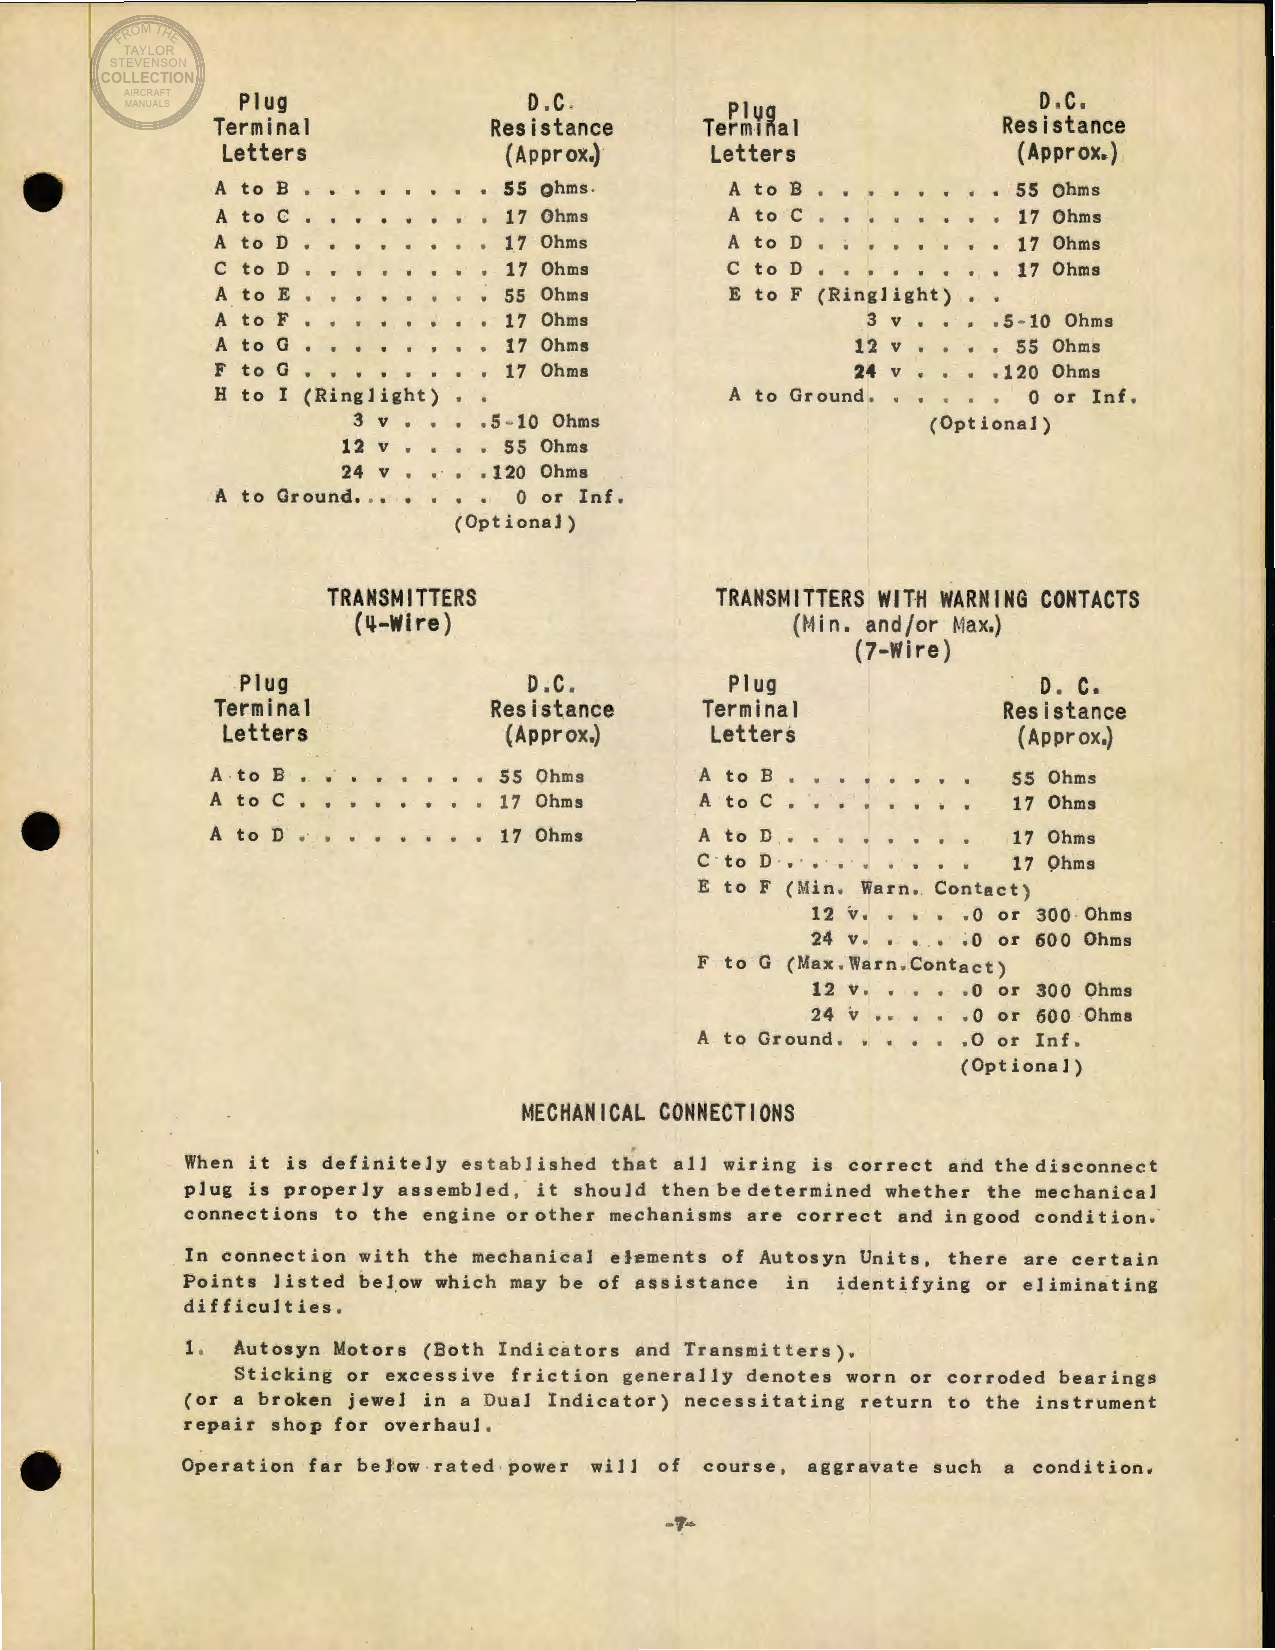 Sample page 7 from AirCorps Library document: Engine and Aeronautical Instruments for the B-17